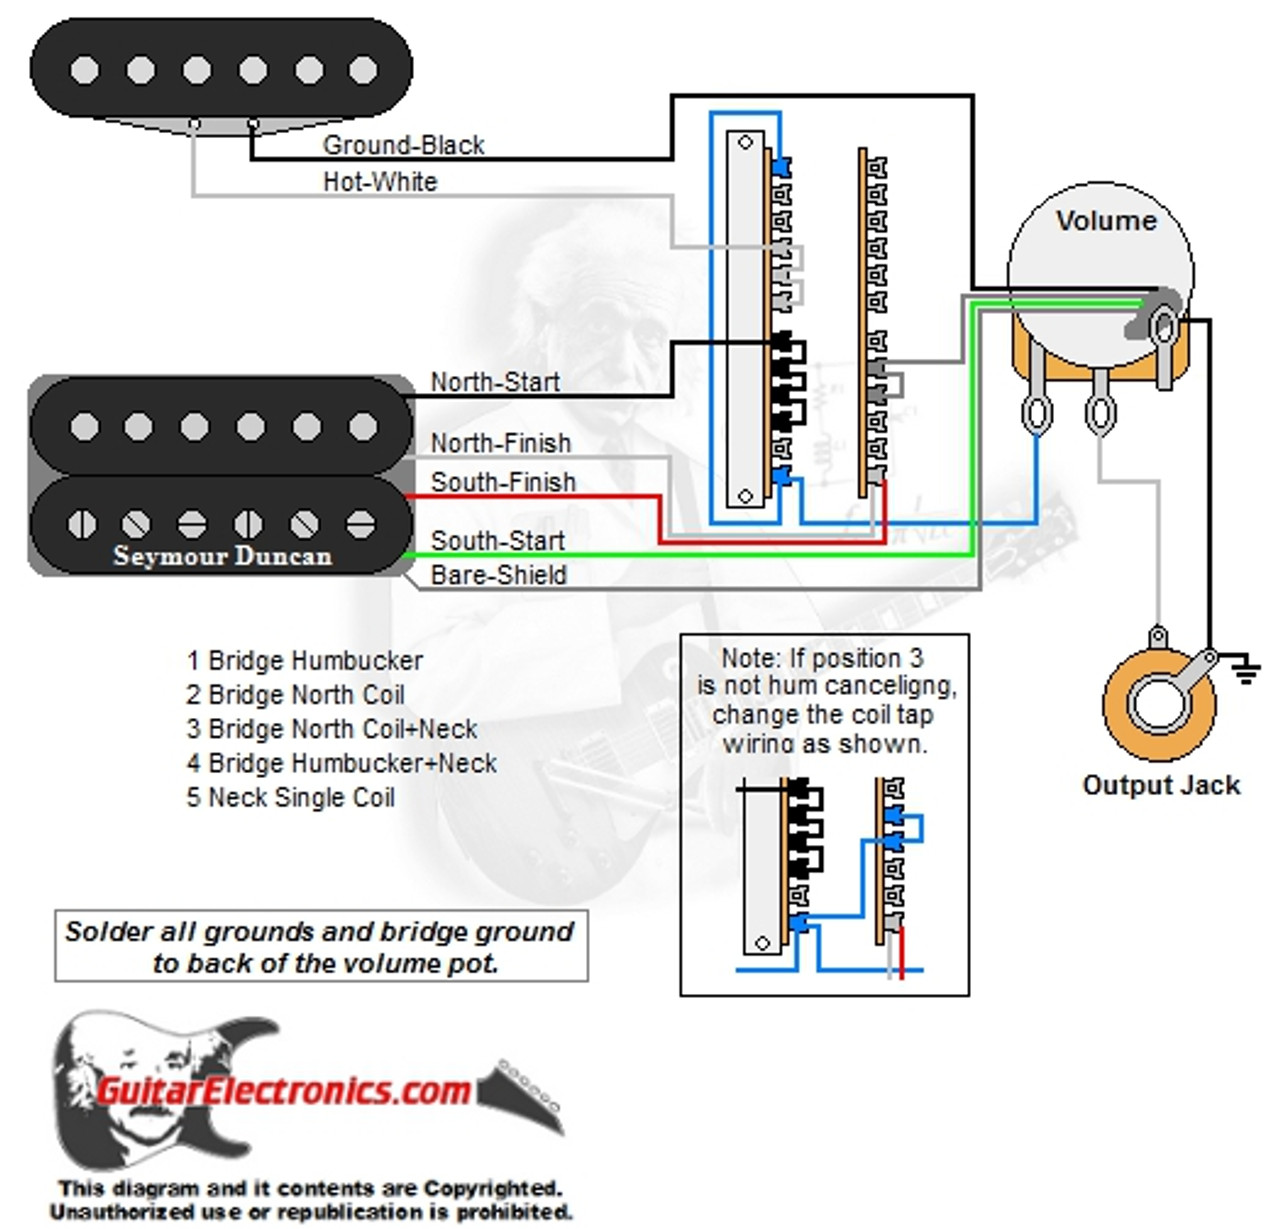 1 Humbucker/1 Single Coil/5-Way Lever Switch/1 Volume/01 -  GuitarElectronics.comGuitar Electronics